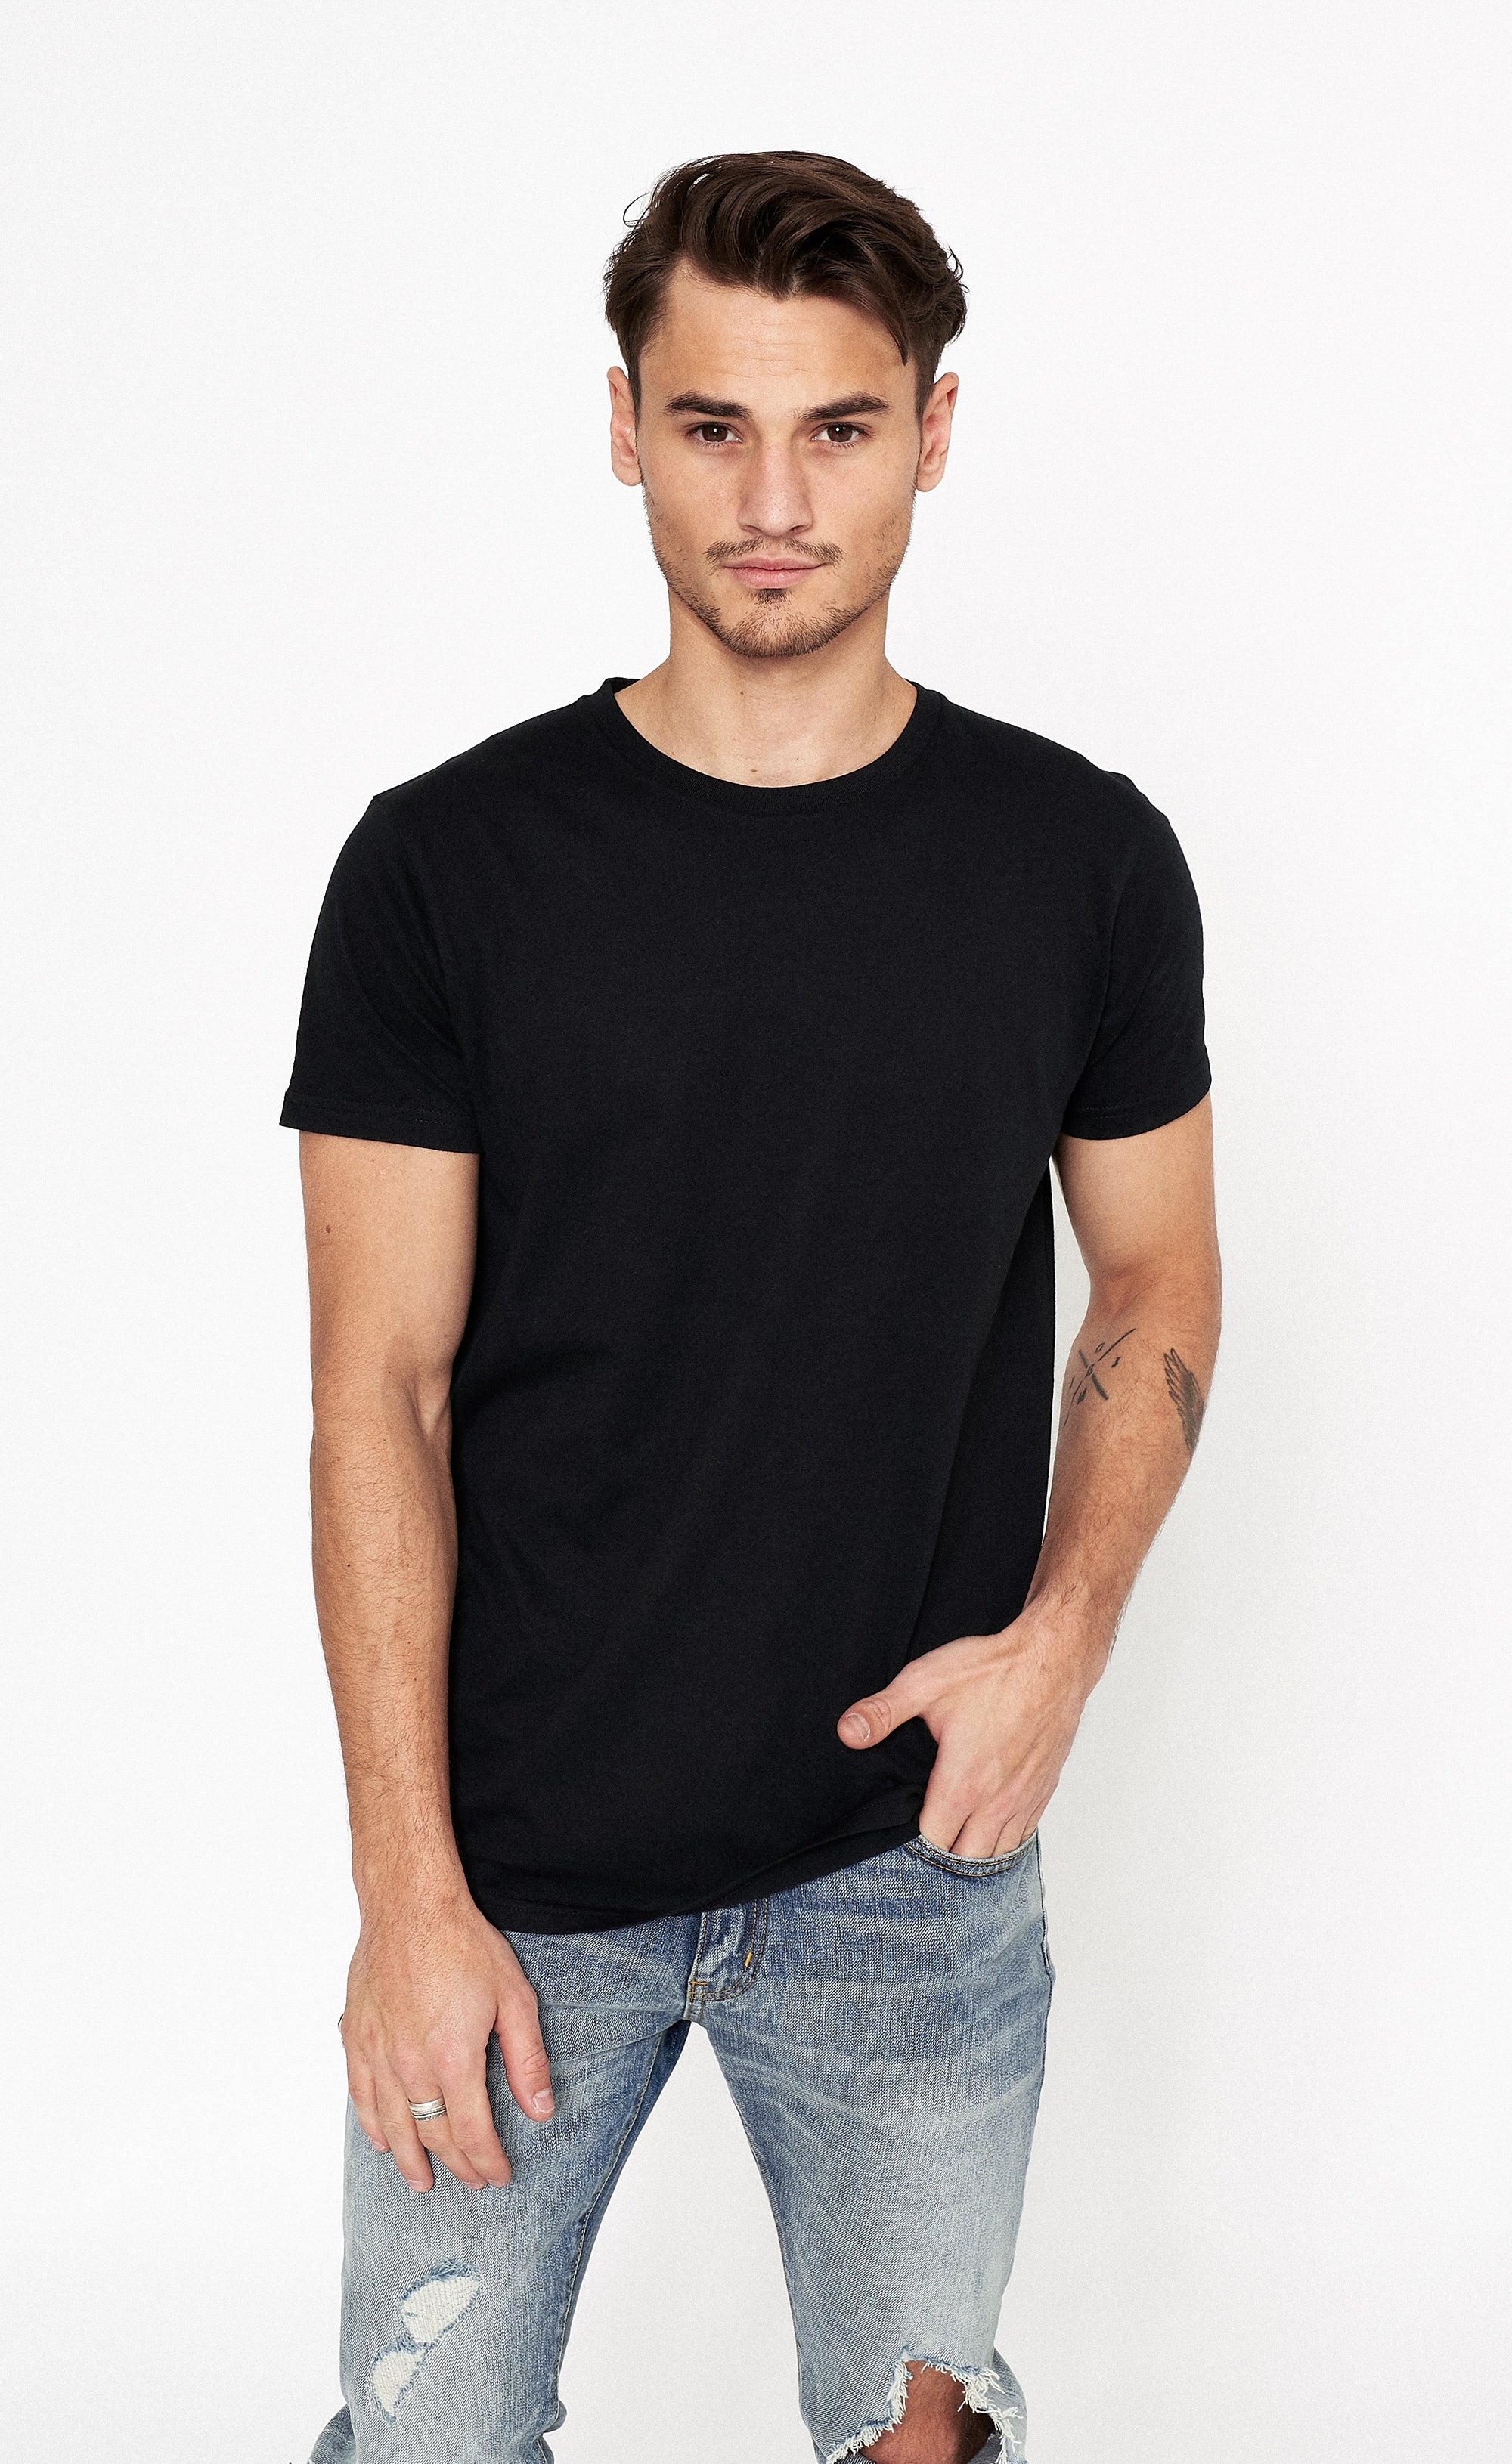 CLASSIC SHIRT - BLACK - Forage-Clothing